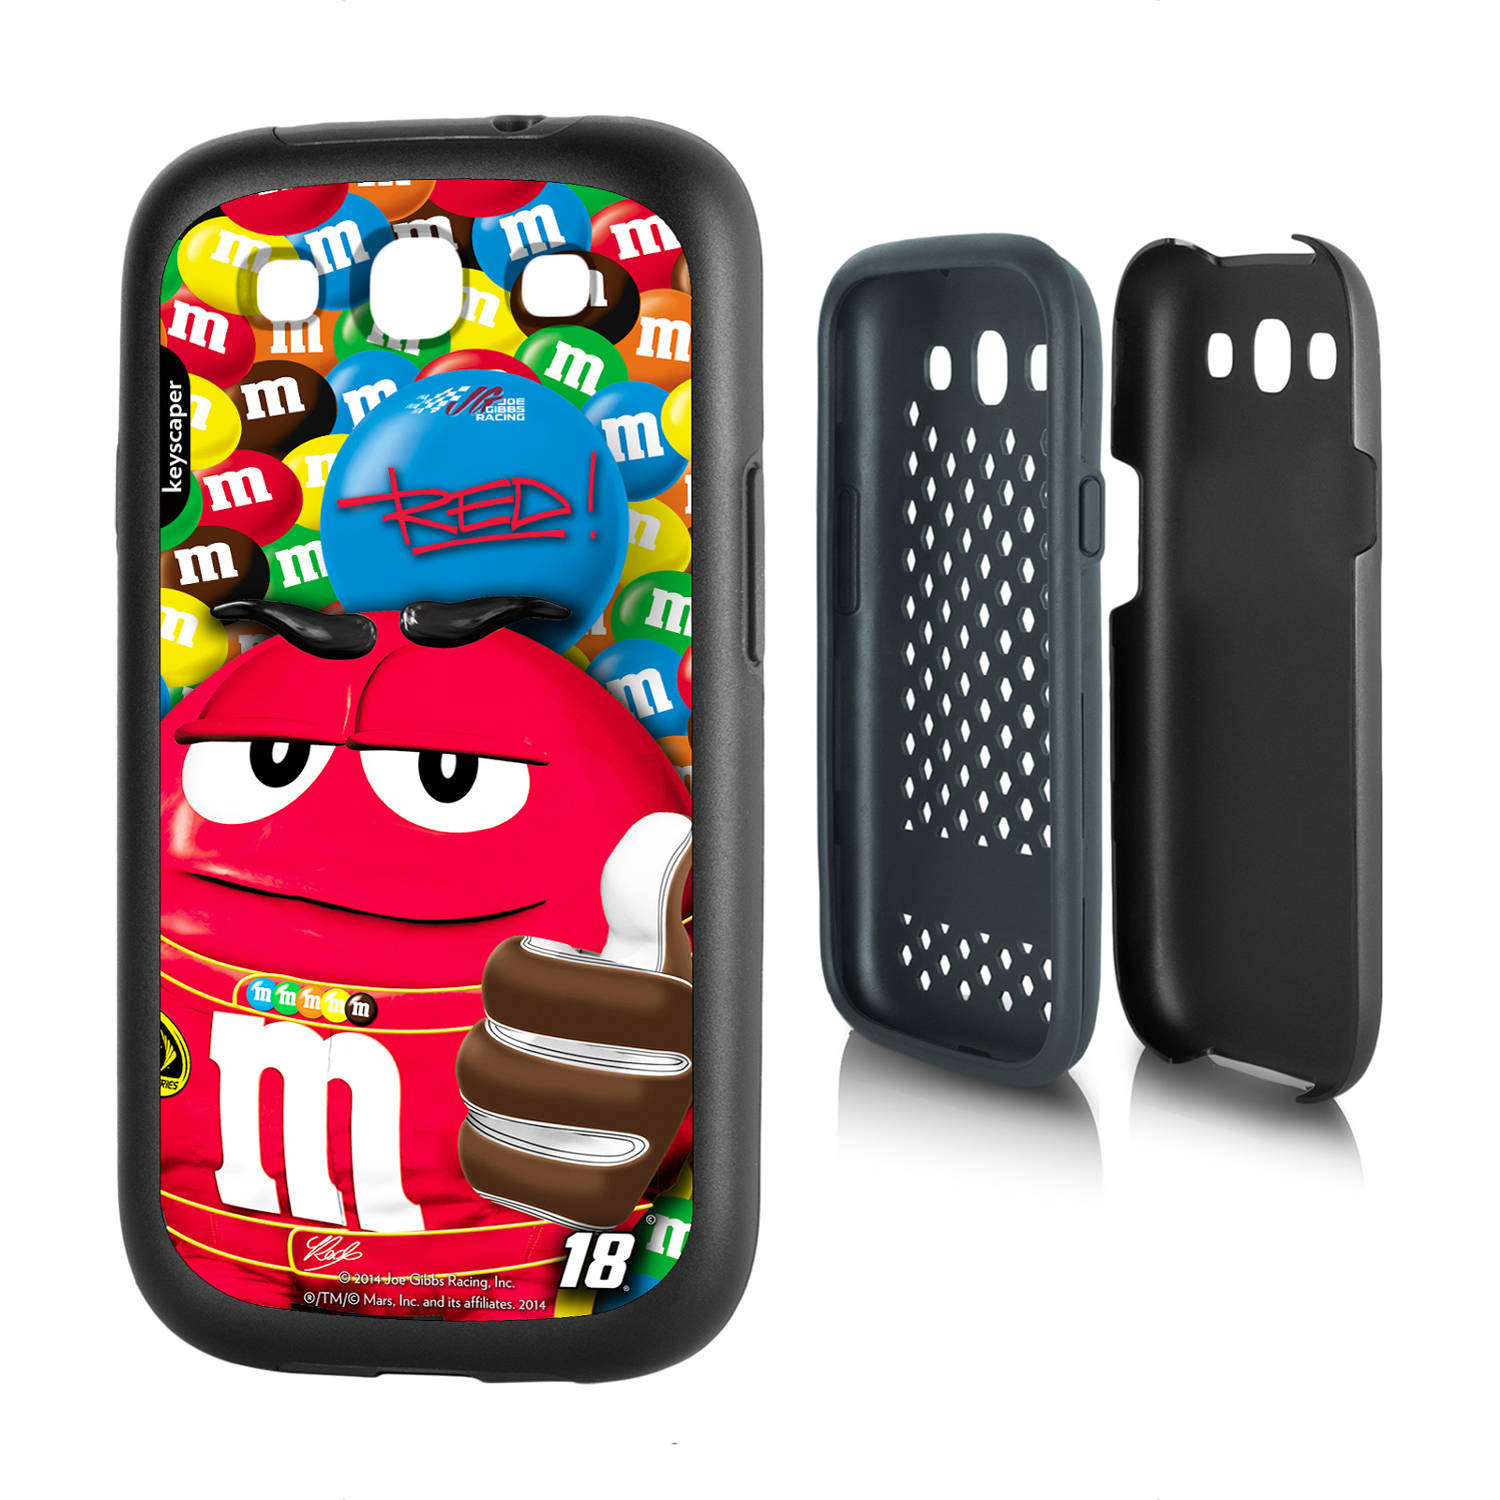 Kyle Busch #18 Galaxy S3 Rugged Case